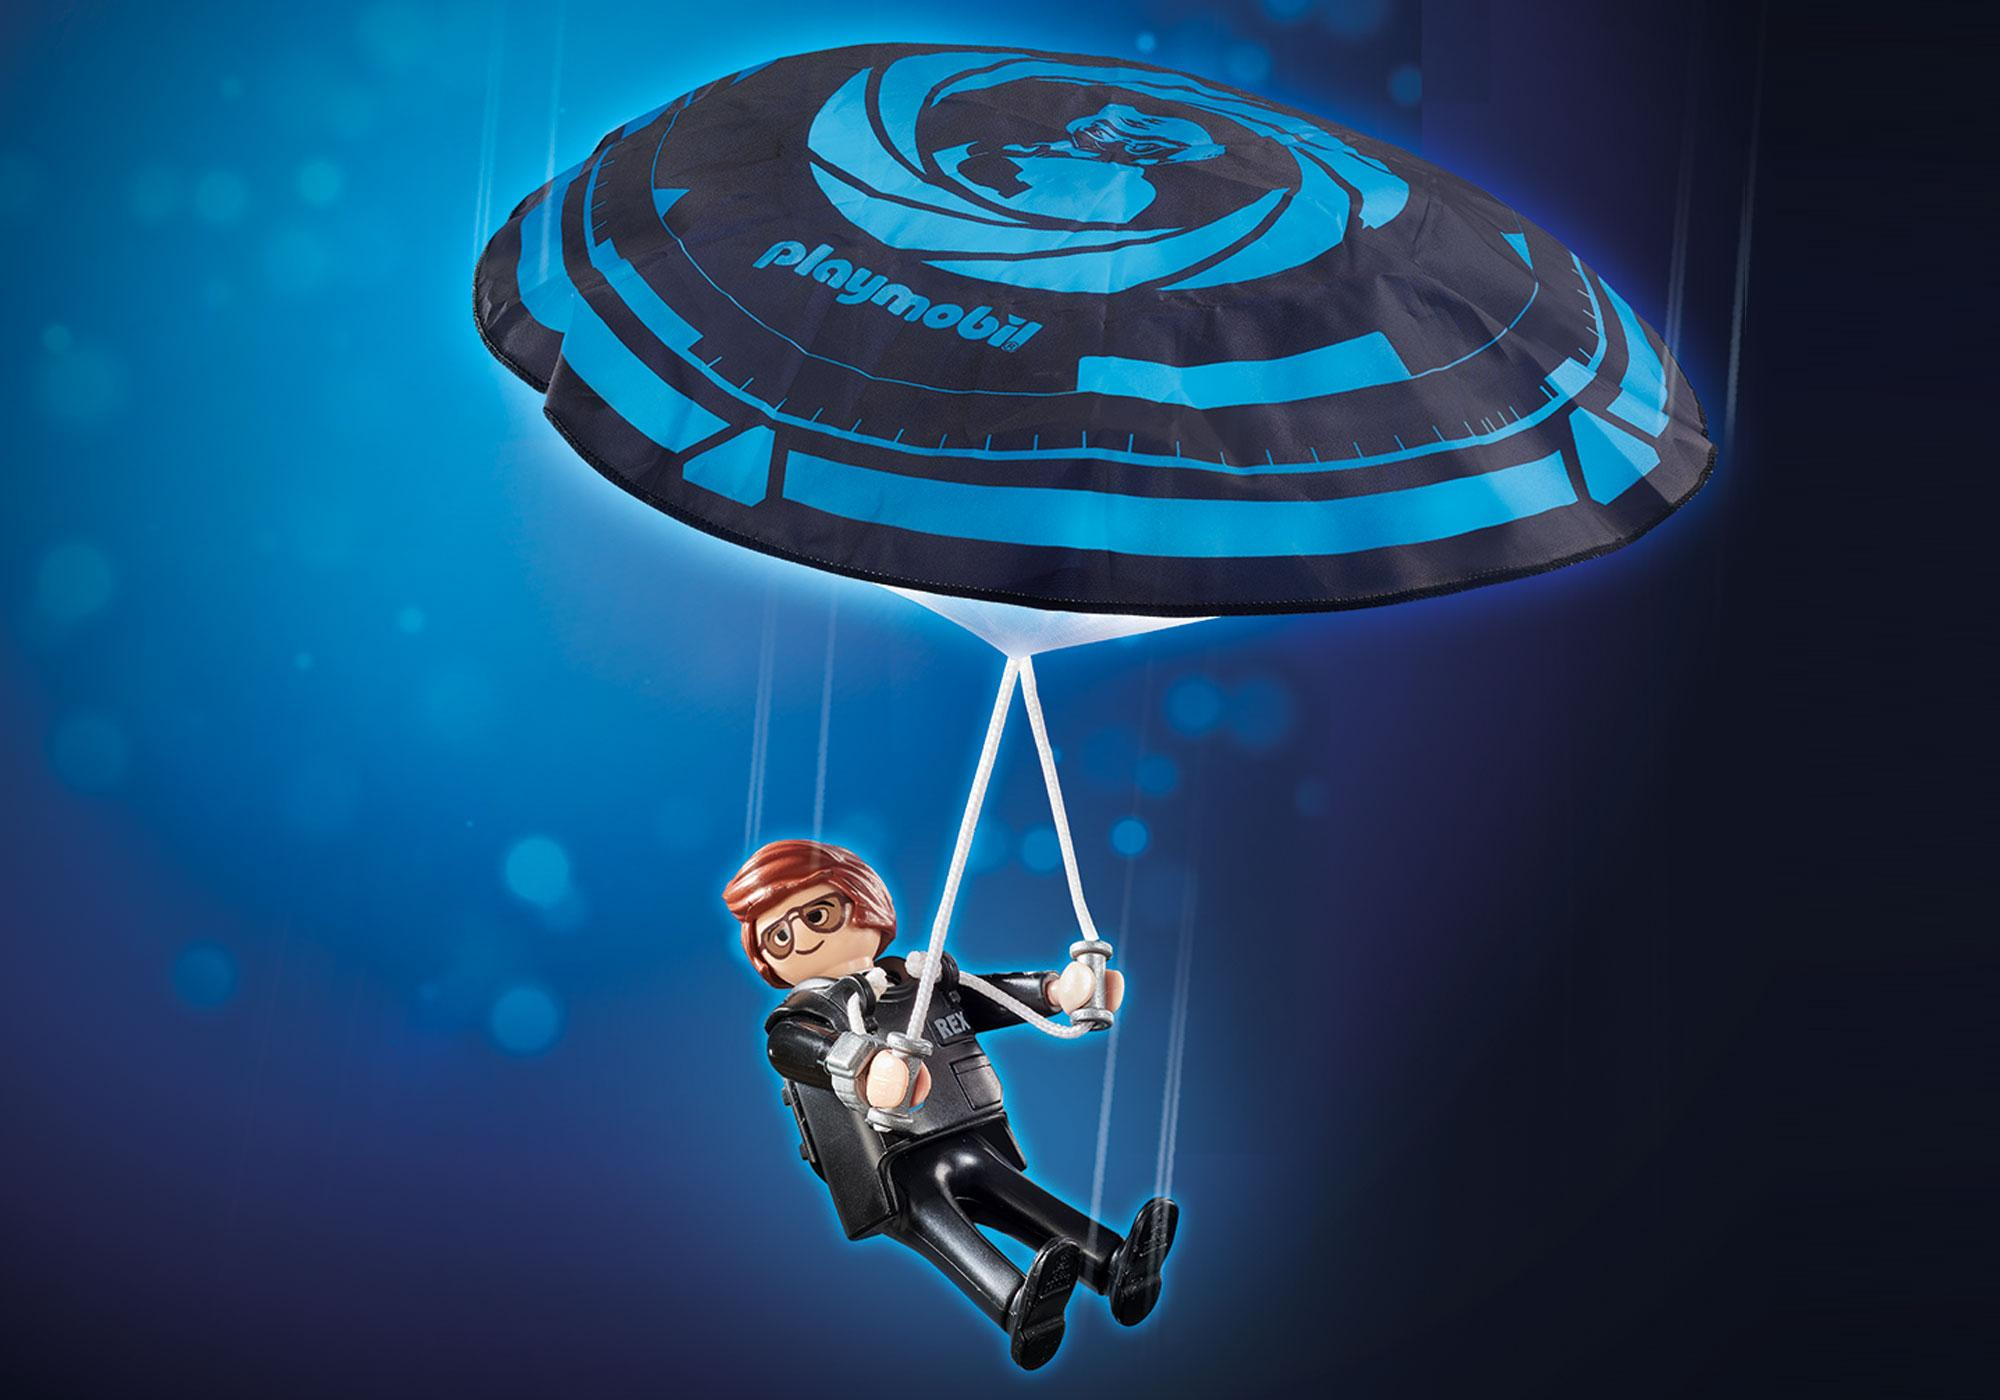 70070_product_detail/PLAYMOBIL:THE MOVIE Rex Dasher with Parachute